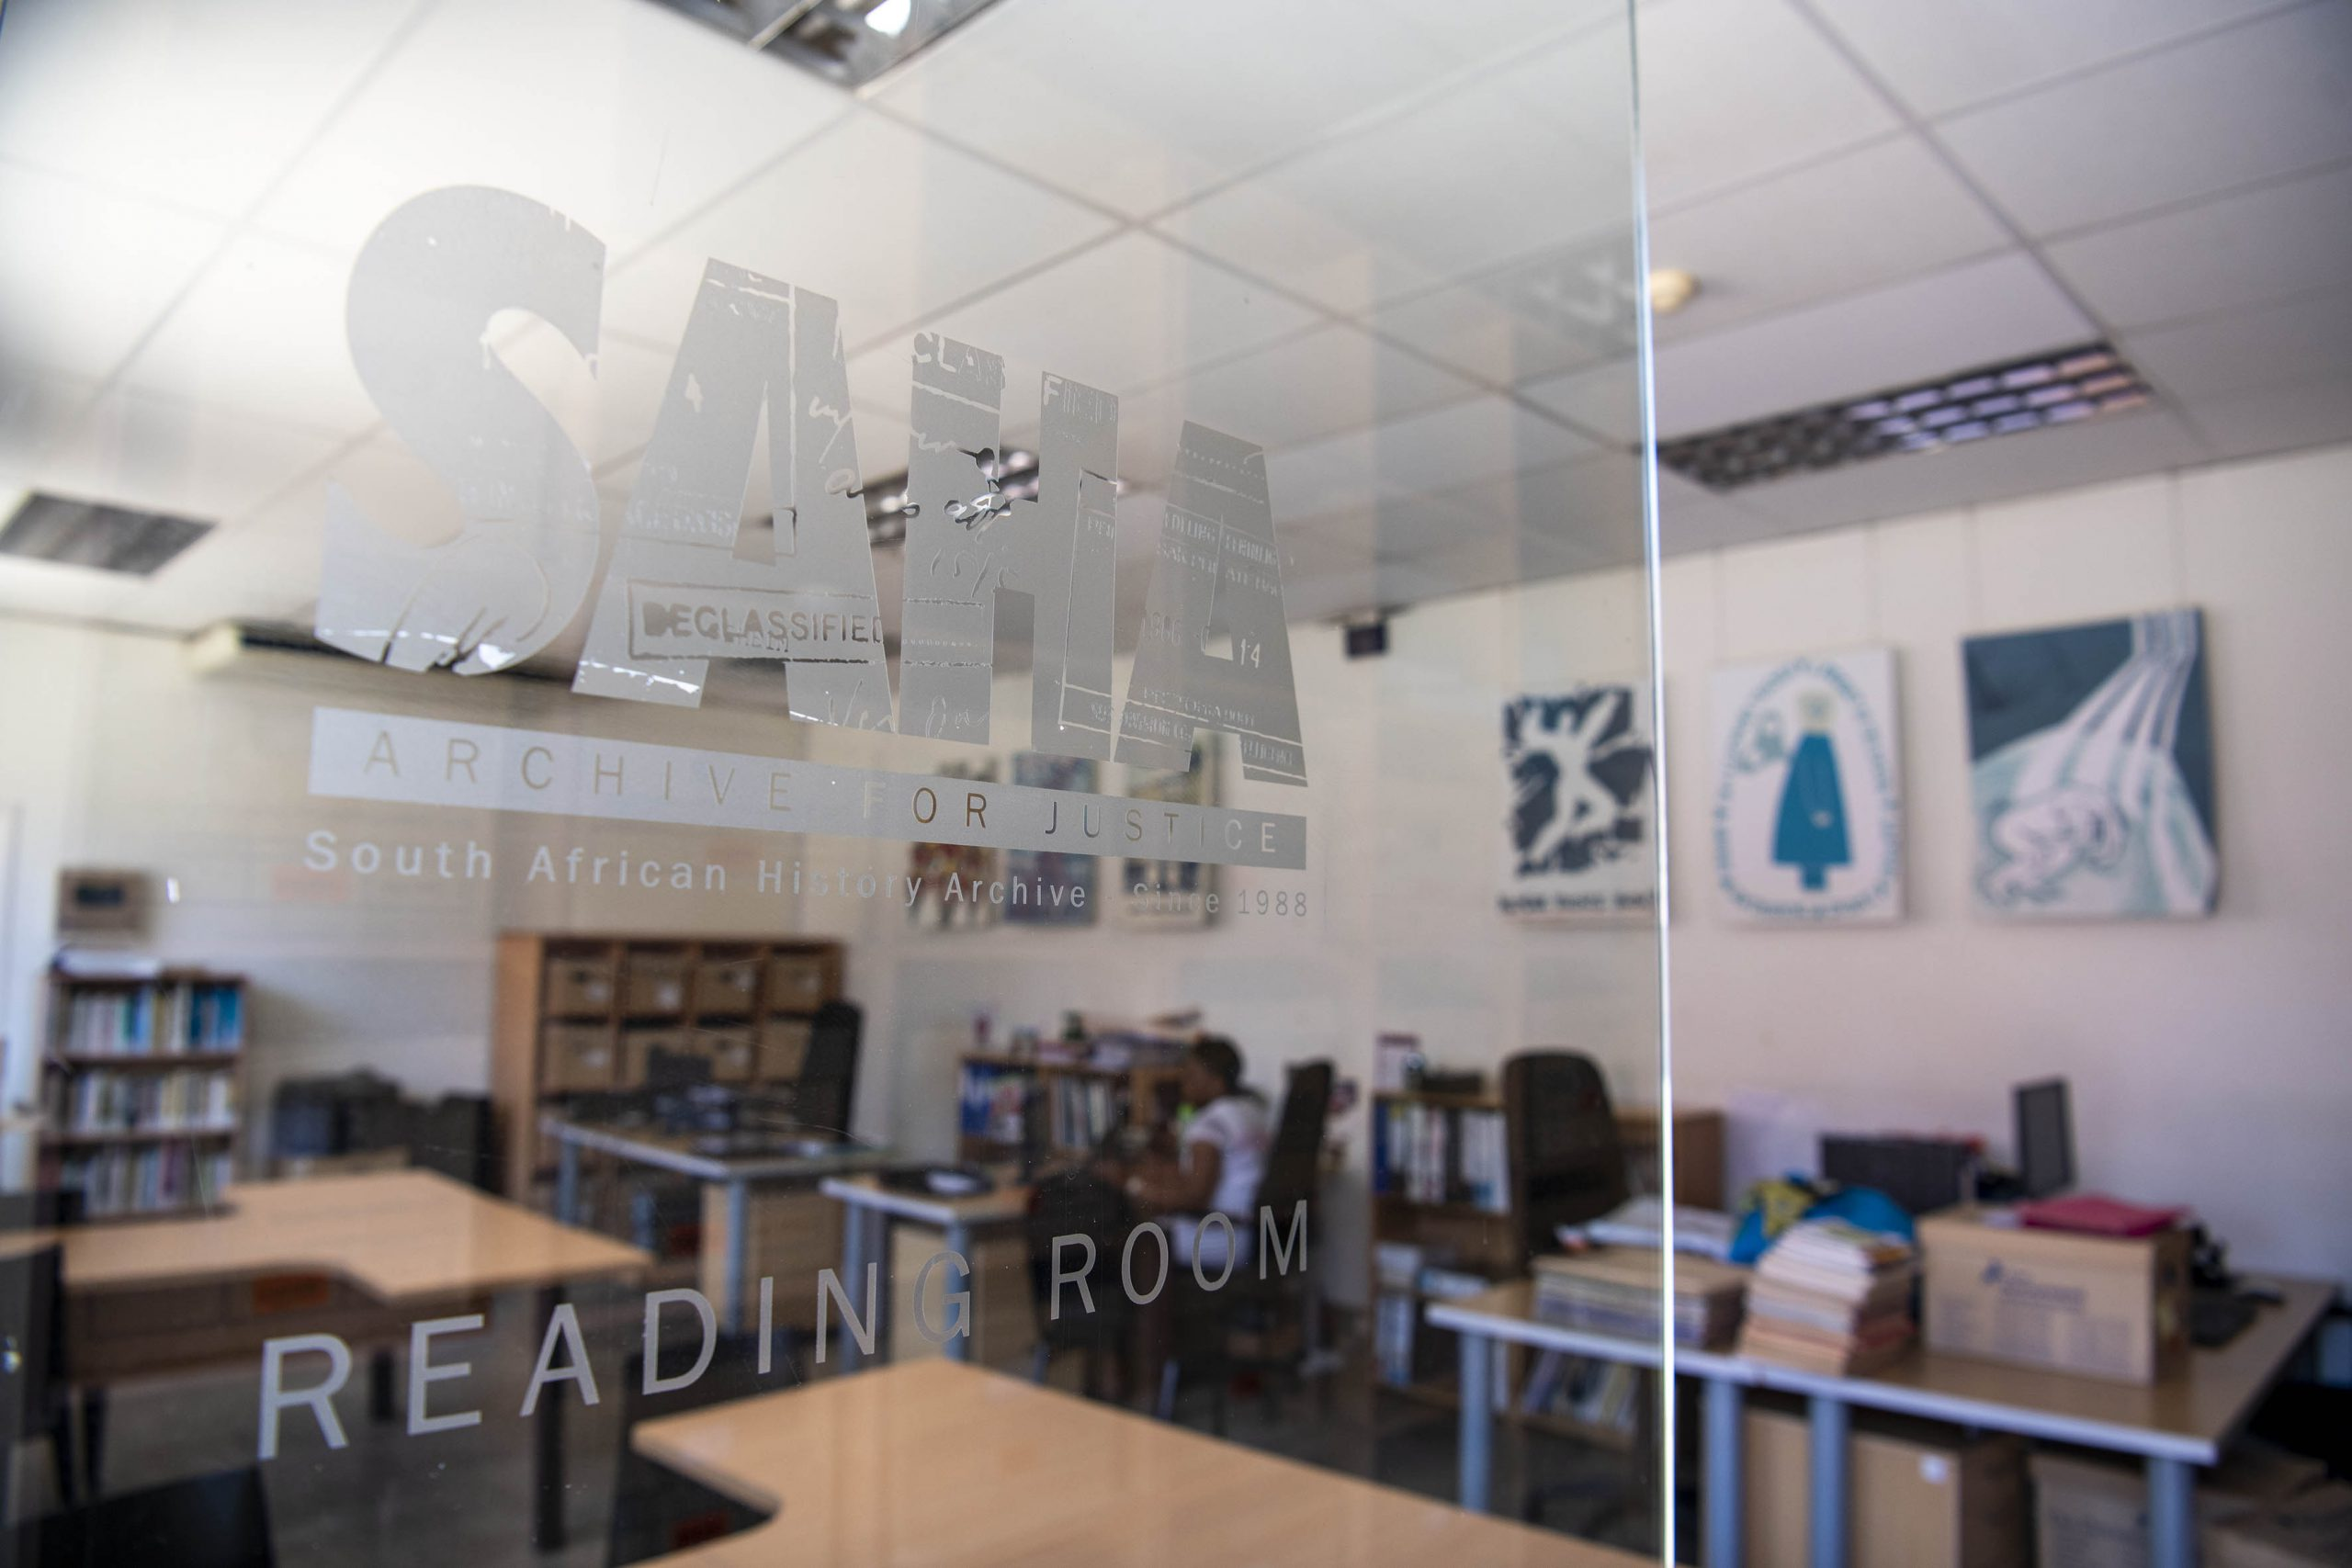 3 February 2020: The reading room at the South African History Archive is open to the public by appointment. The institution attempts to release information it feels is in the public interest, including records withheld by the private and public sector.